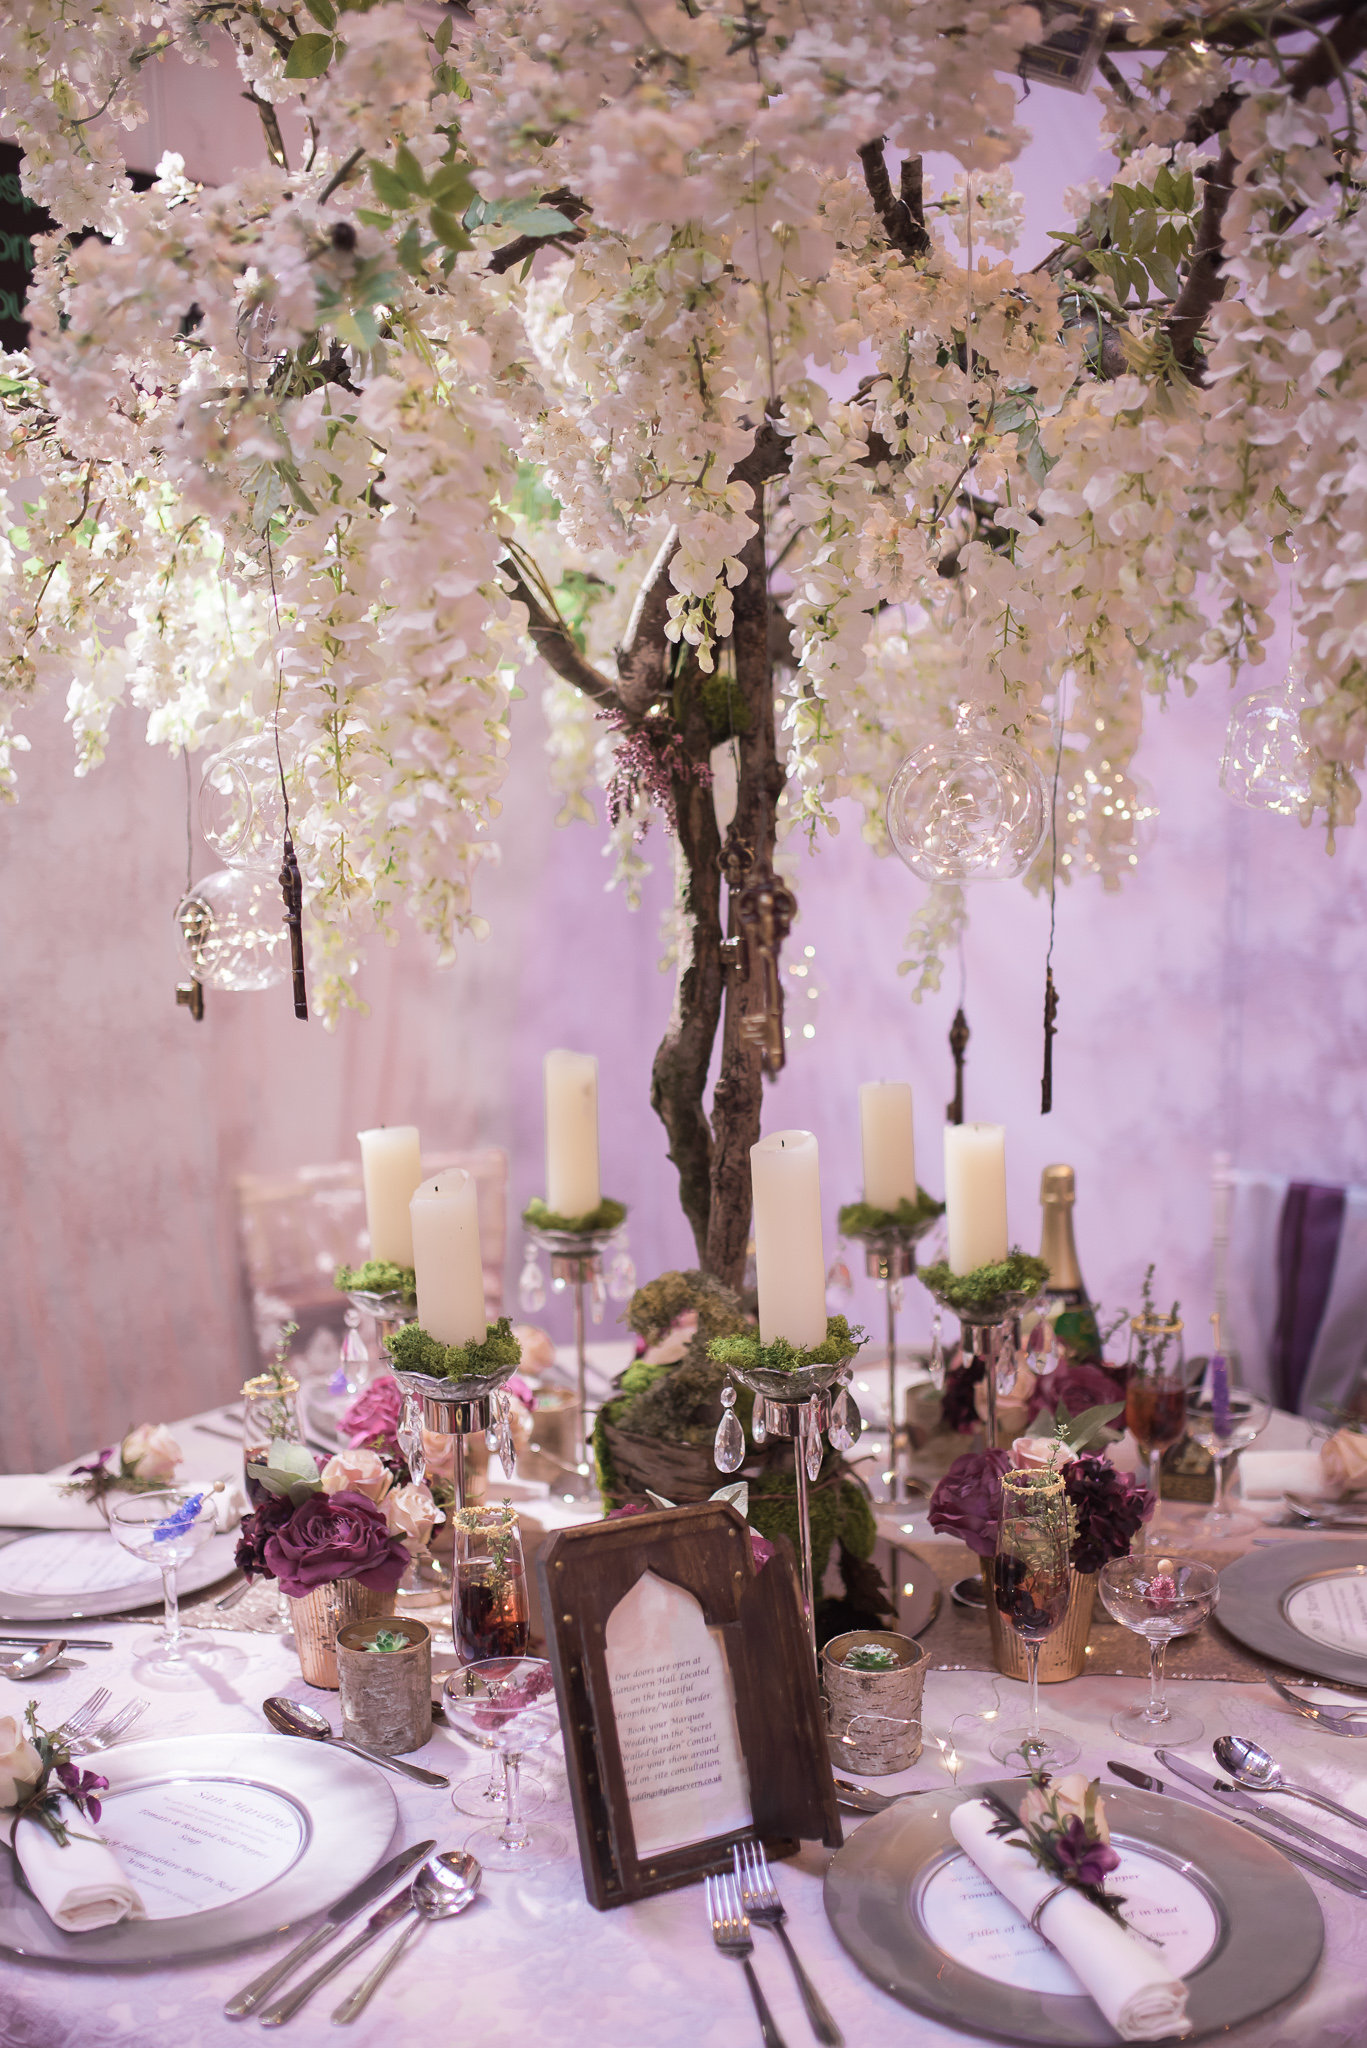 Wedding table accessories hire choice image wedding dress wedding table accessories hire choice image wedding dress wedding table accessories hire gallery wedding dress decoration junglespirit Images